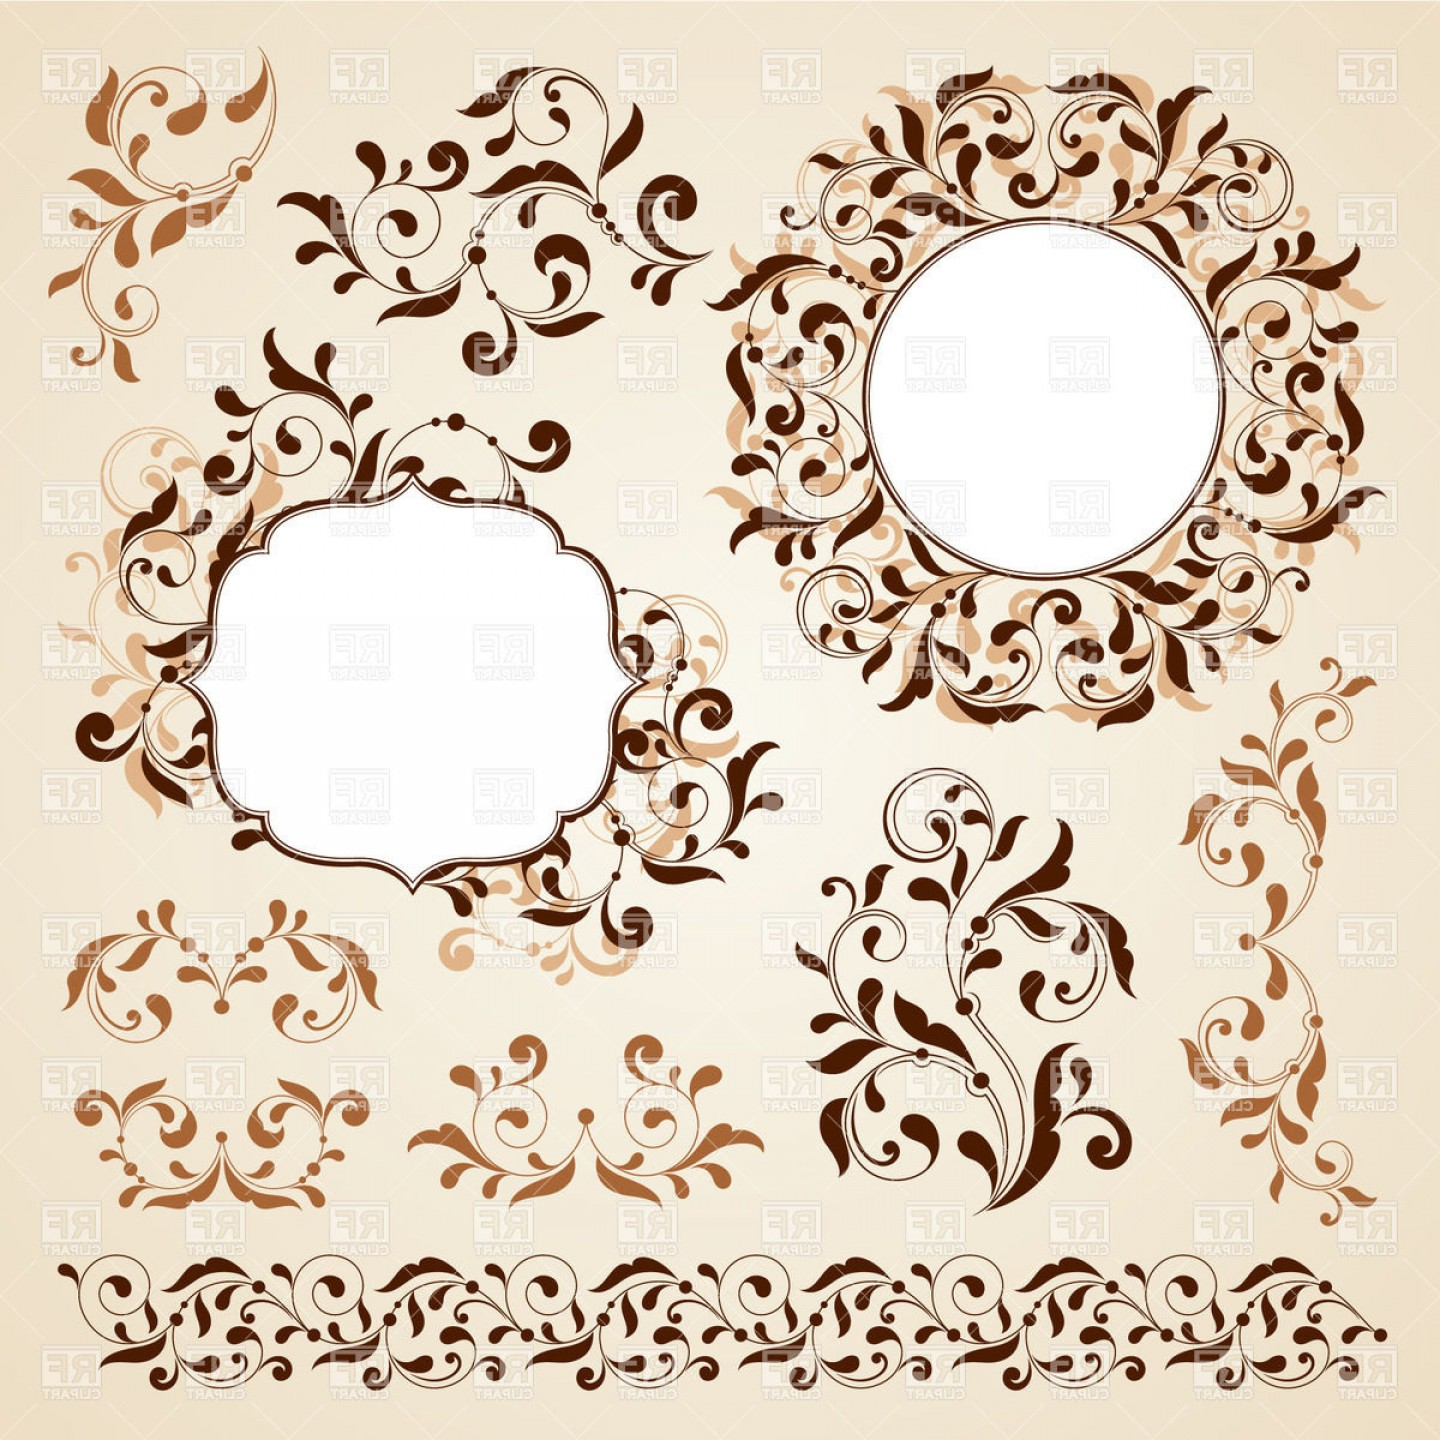 1440x1440 Curly Vintage Vignettes And Borders Vector Clipart Sohadacouri